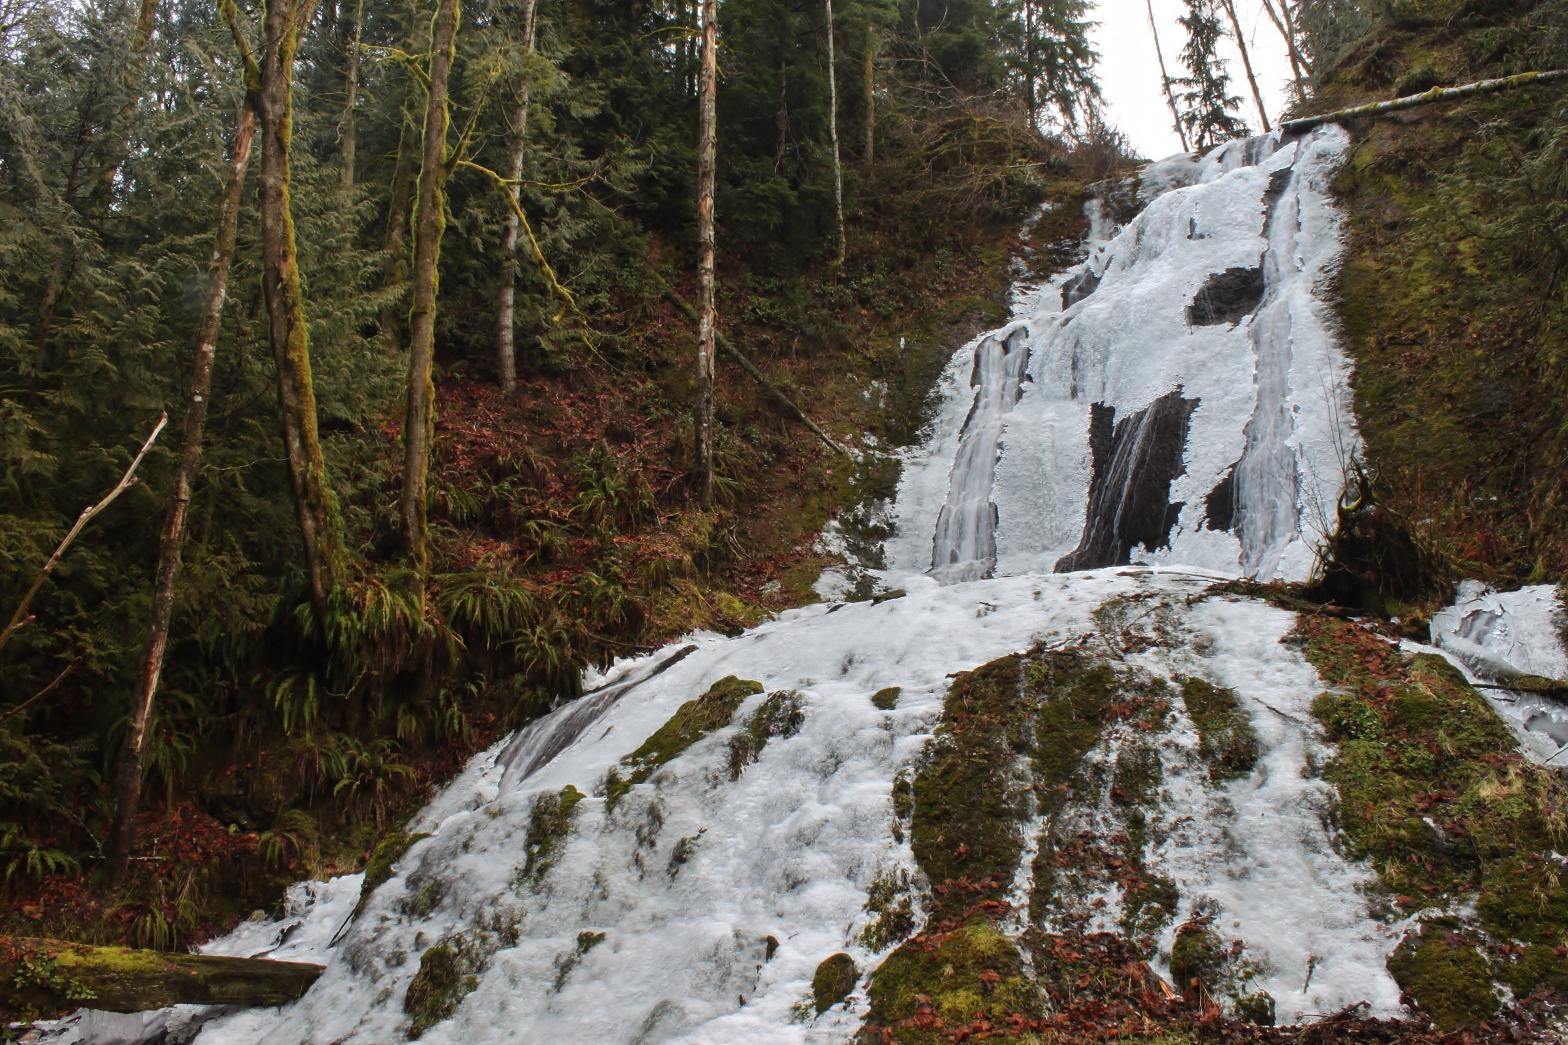 Icy Silver Falls in the winter